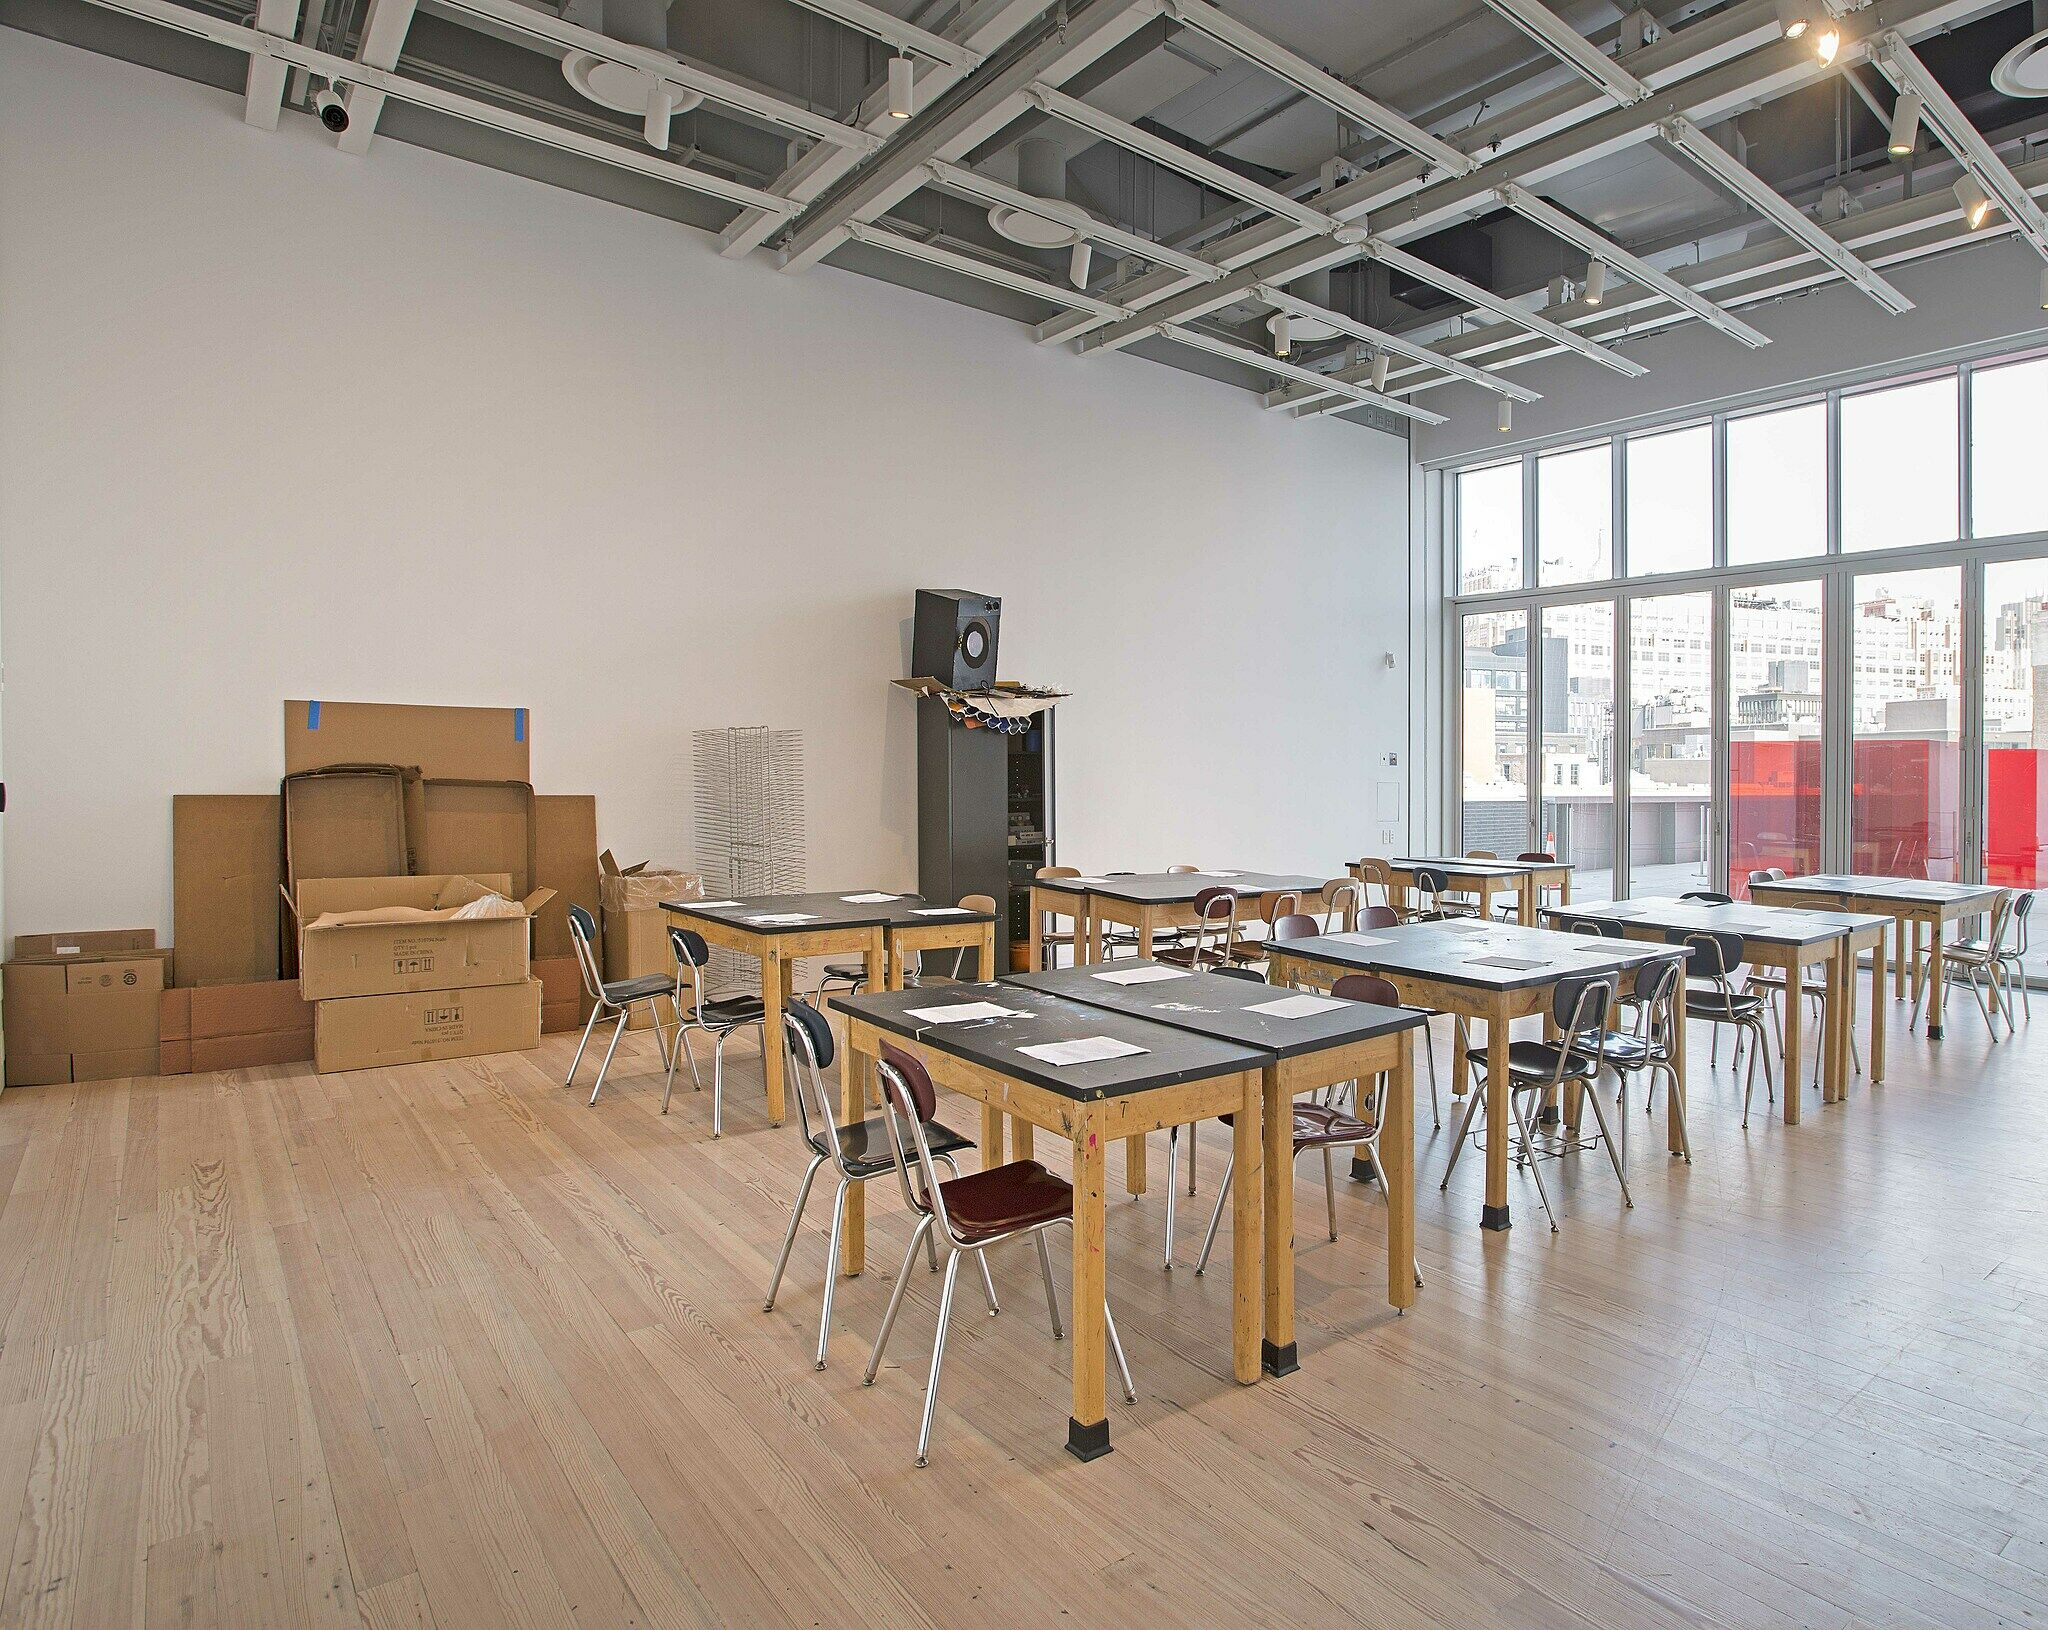 Classroom desks and chairs in a gallery.